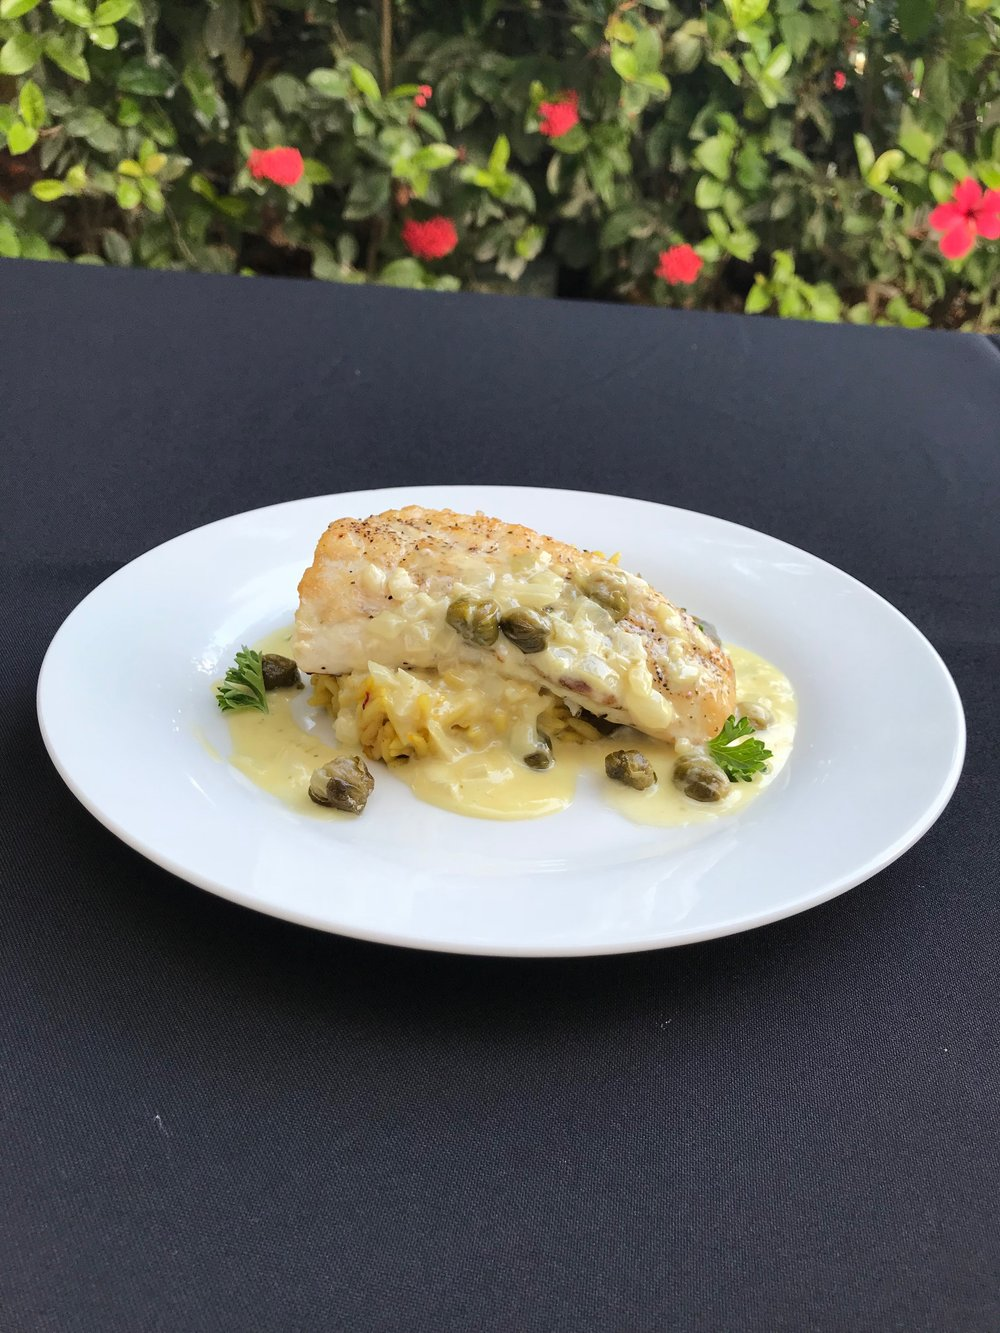 Pan Seared Snook  - Fresh caught snook fillet served on a bed of orzo rice with creamy garlic caper sauce